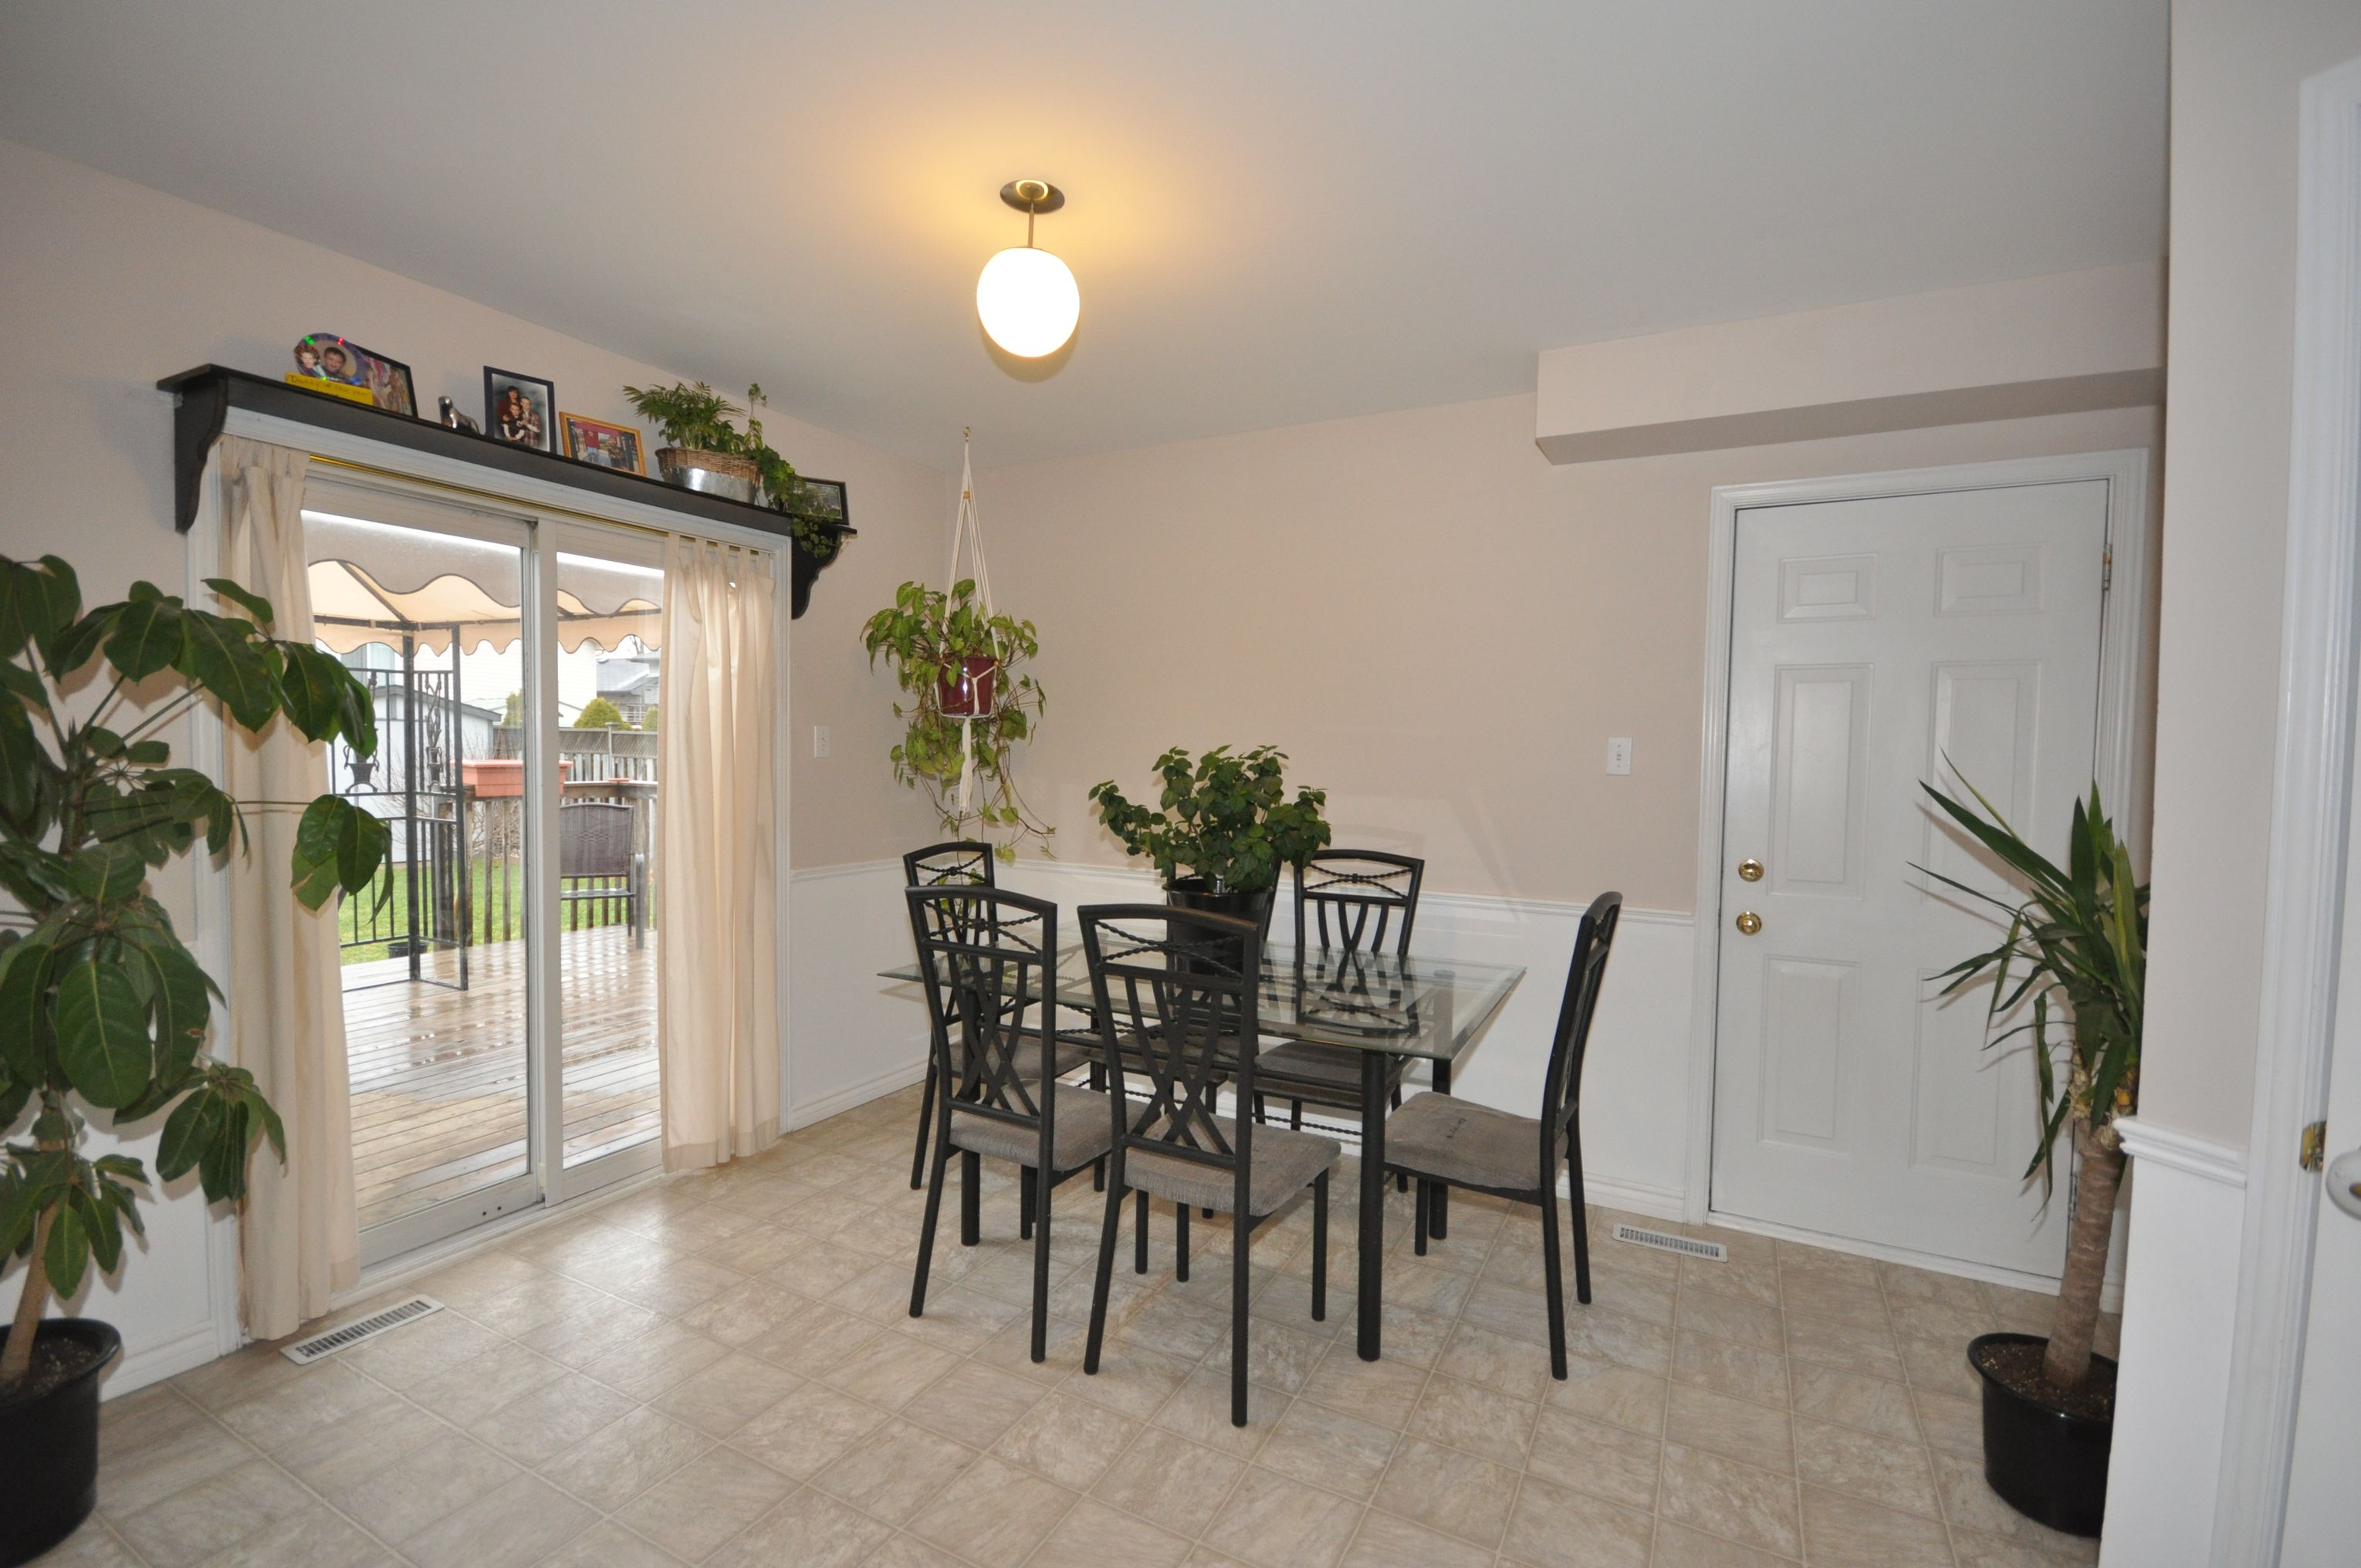 Spacious eating area with patio doors to sundeck